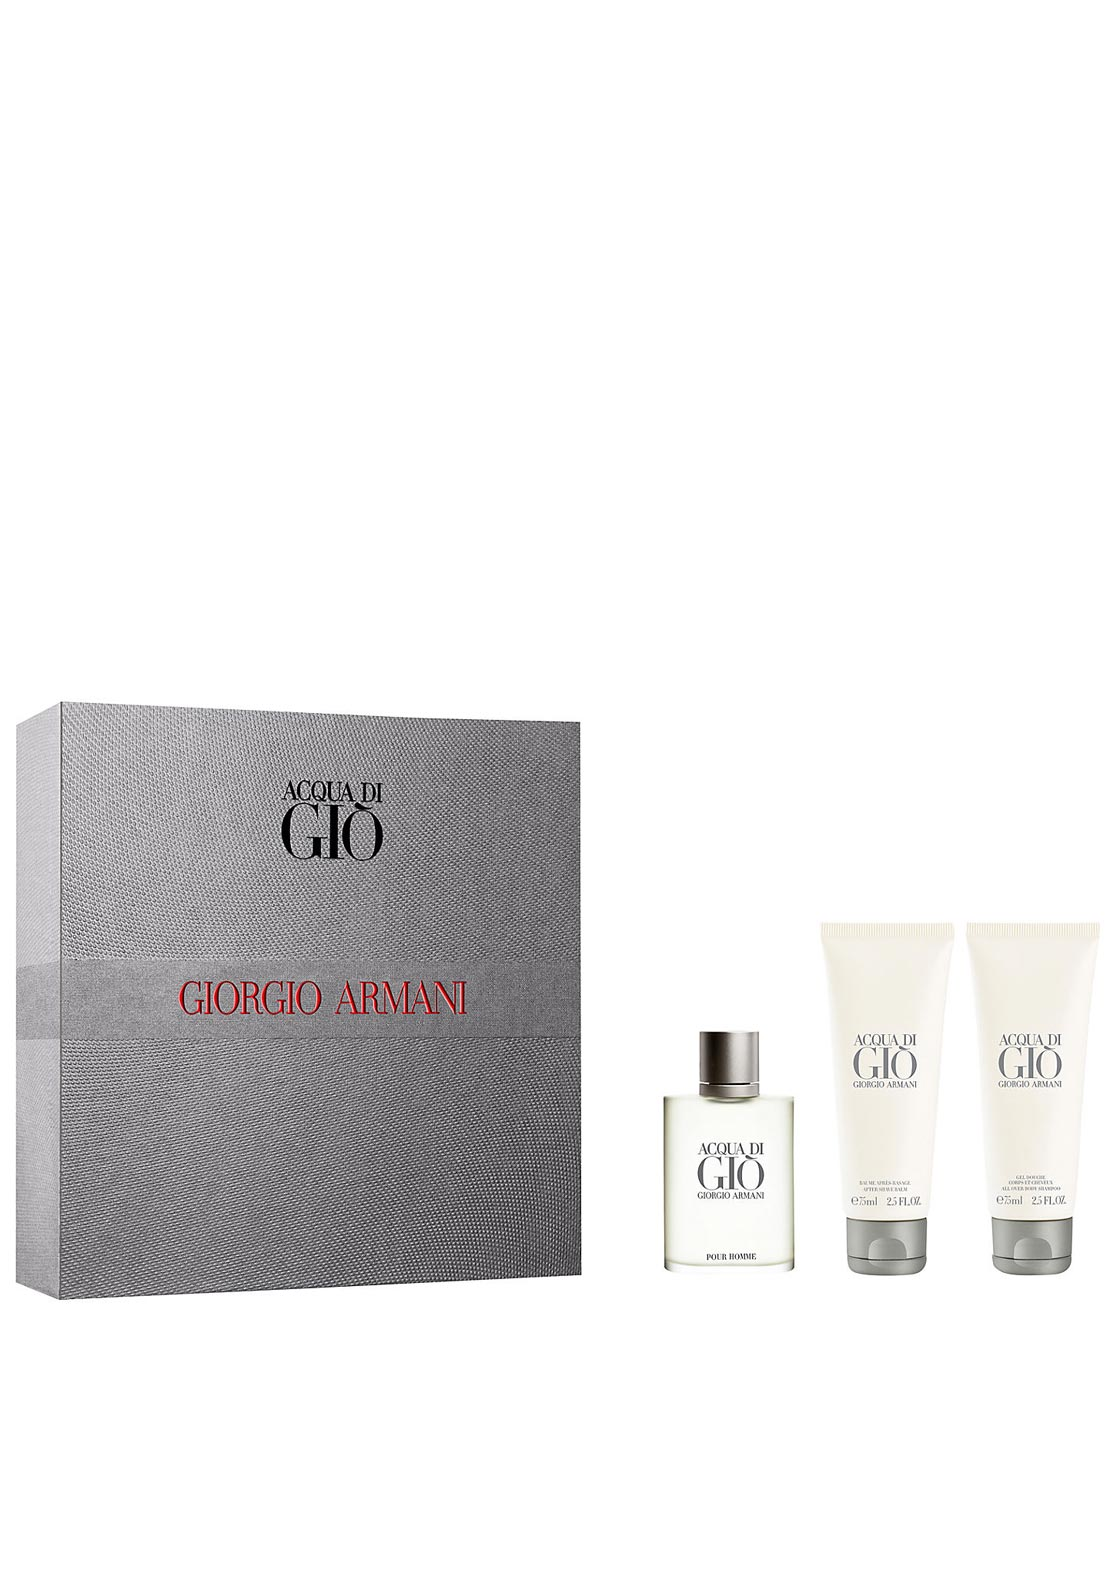 Giorgio Armani Eau de Toilette Acqua Di Gio for Men Gift Set, 50ml